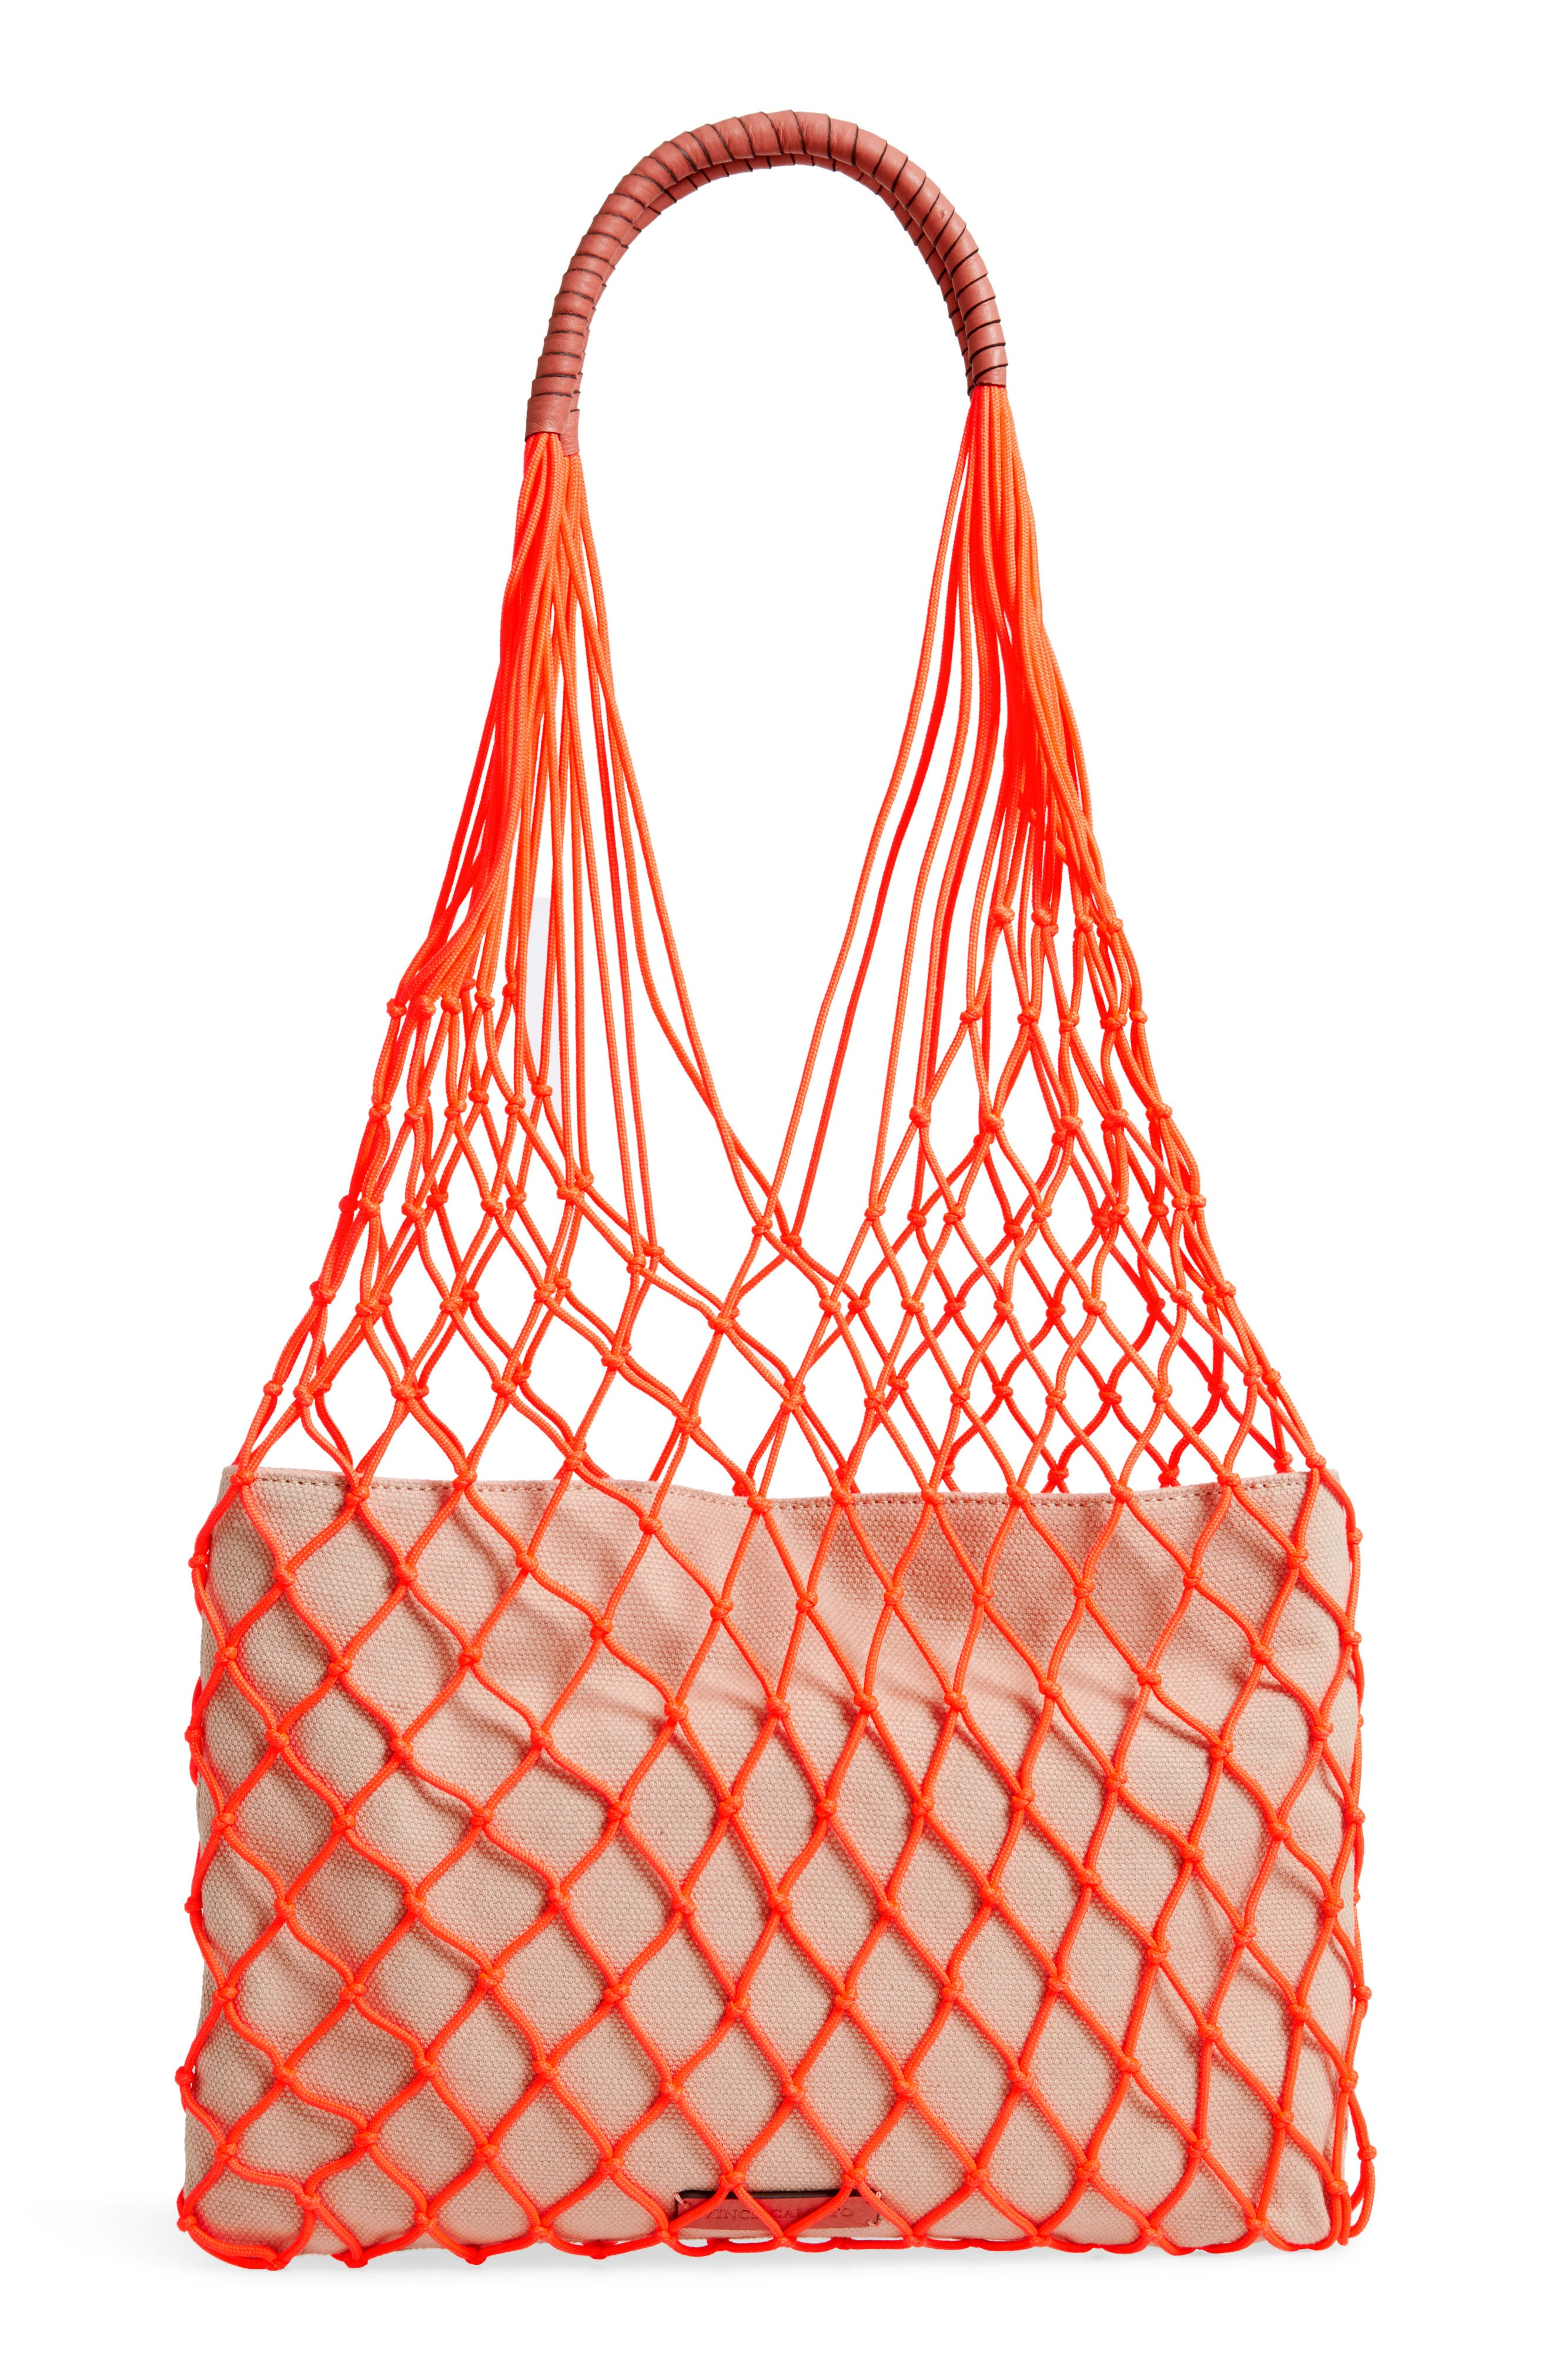 VINCE CAMUTO, Zest Tote, Alternate thumbnail 4, color, FIERY CORAL